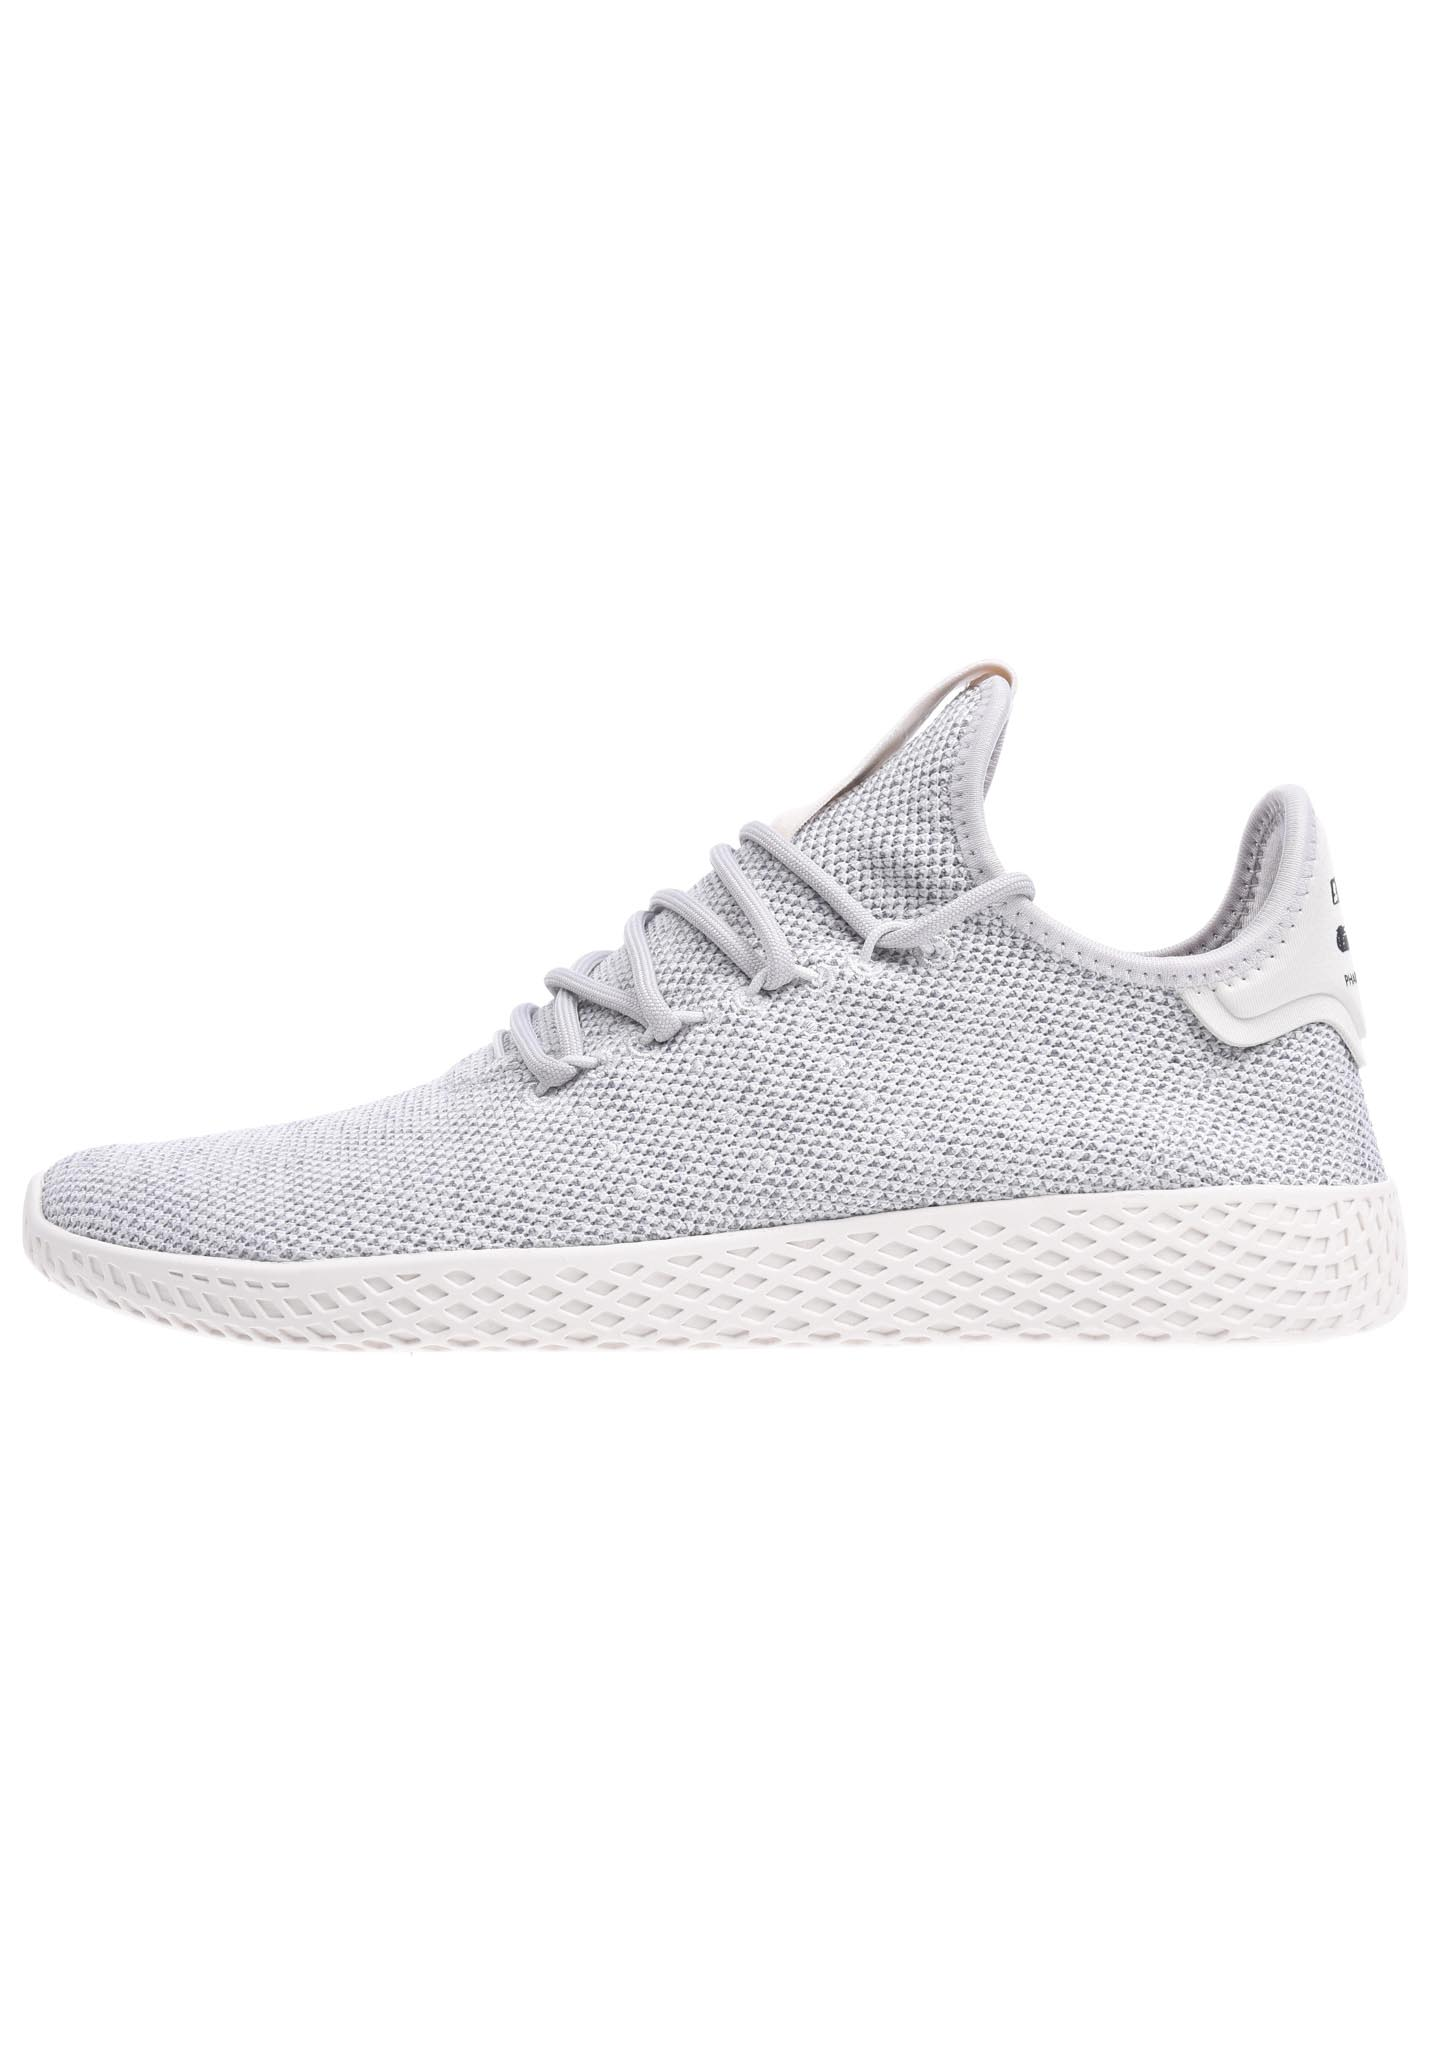 new arrival 5d963 73048 Tennis Uomo Grigio Adidas Hu Sneaker Williams Per Pharrell 4BEqWEnR